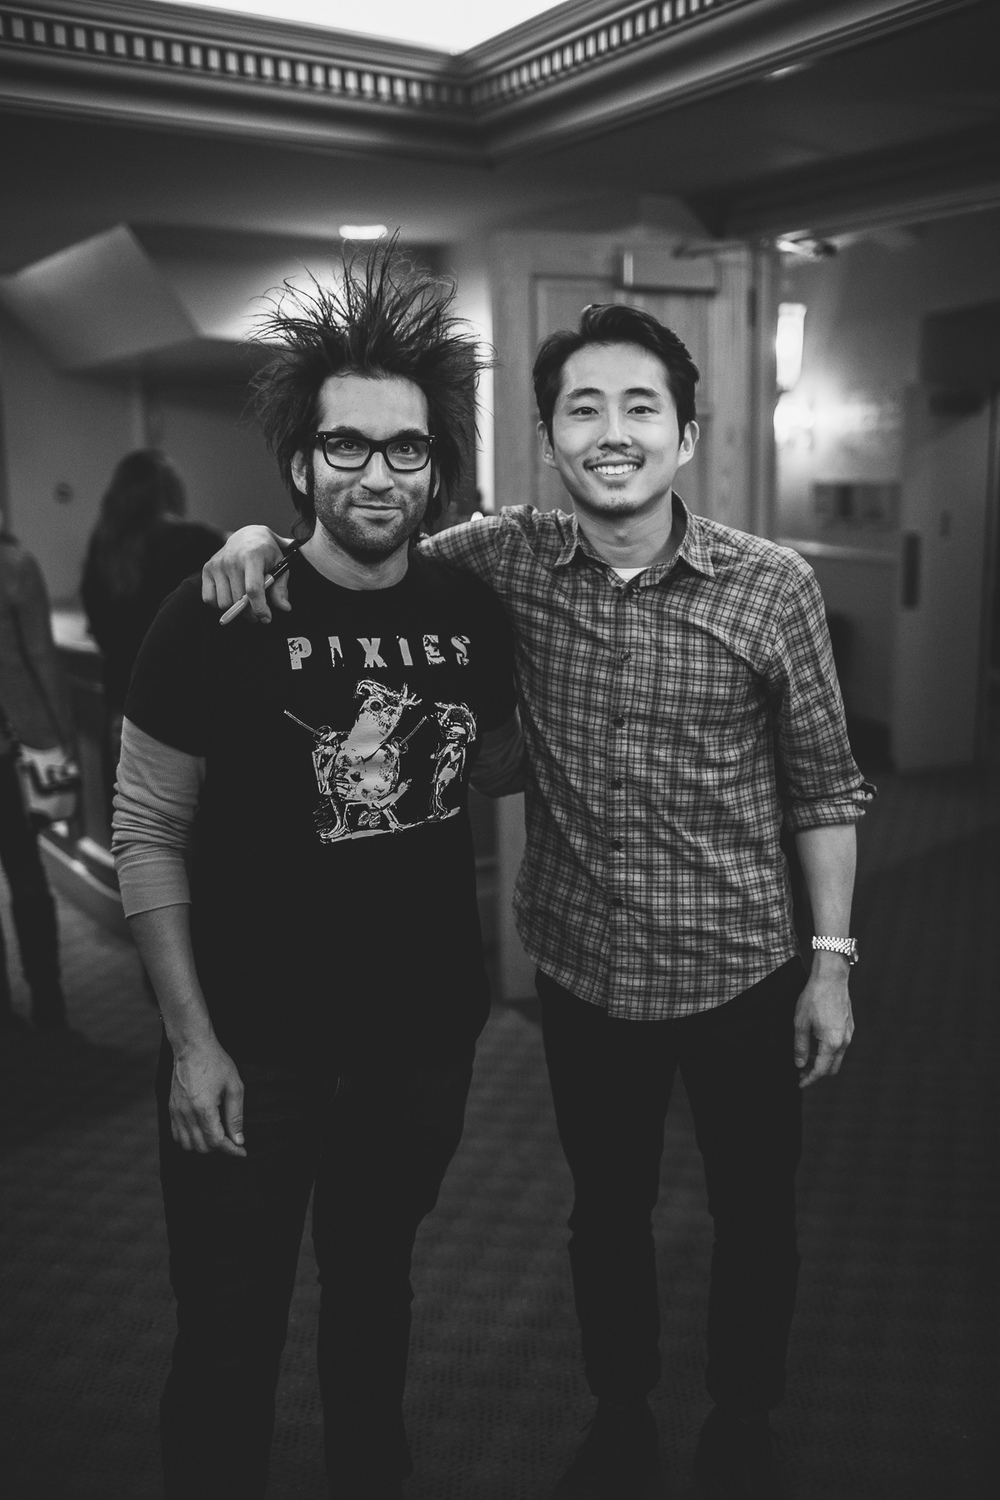 Motion_City_Soundtrack_And_Steven_Yeun_Perform_On_Wits_070.JPG